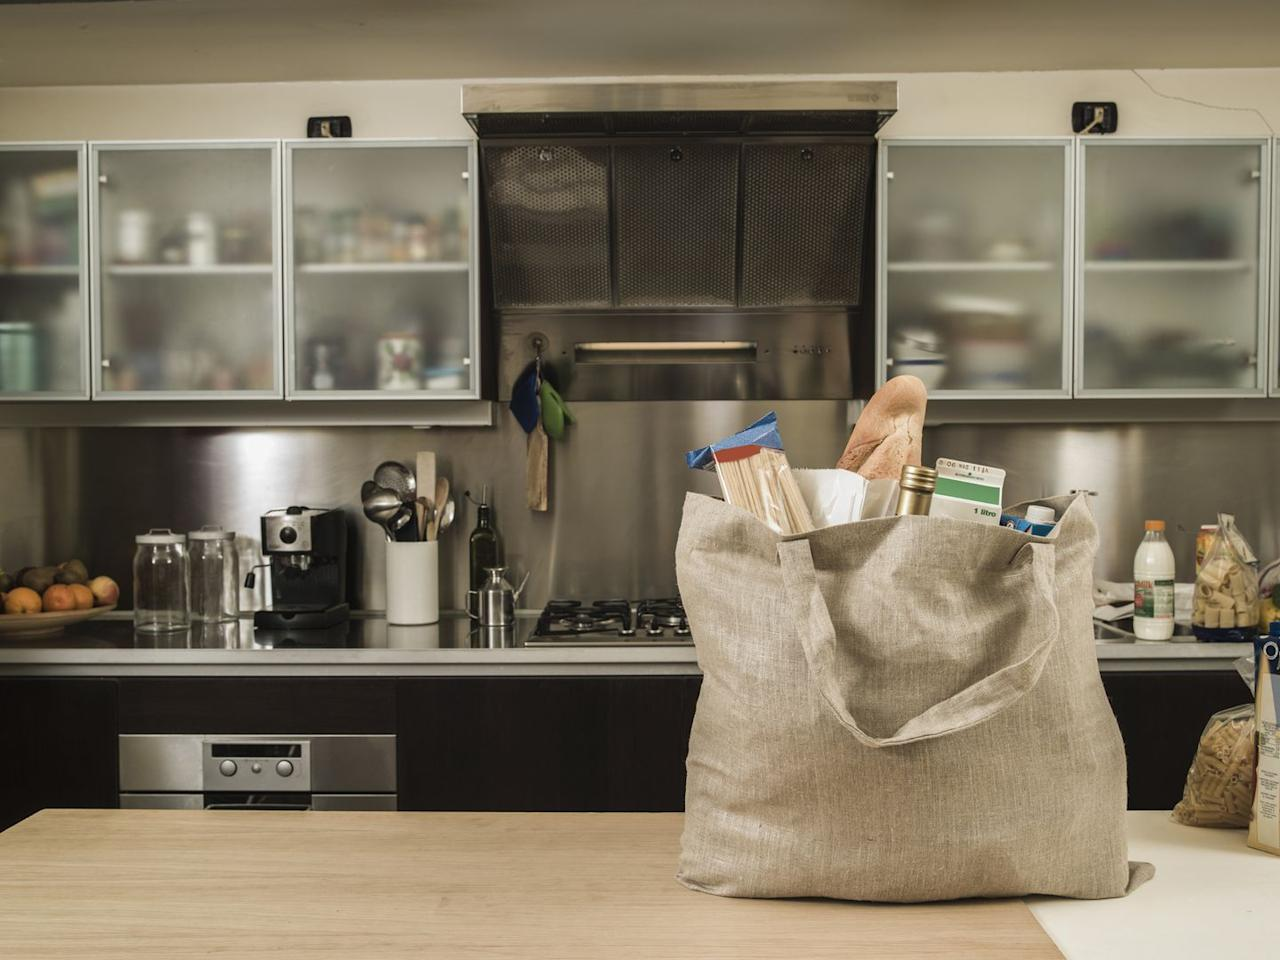 <p>Cut down on plastic by switching to reusable tote bags when doing any kind of shopping. Not only are they better for the environment, but they're more durable and often hold a lot more items than plastic bags.      </p>